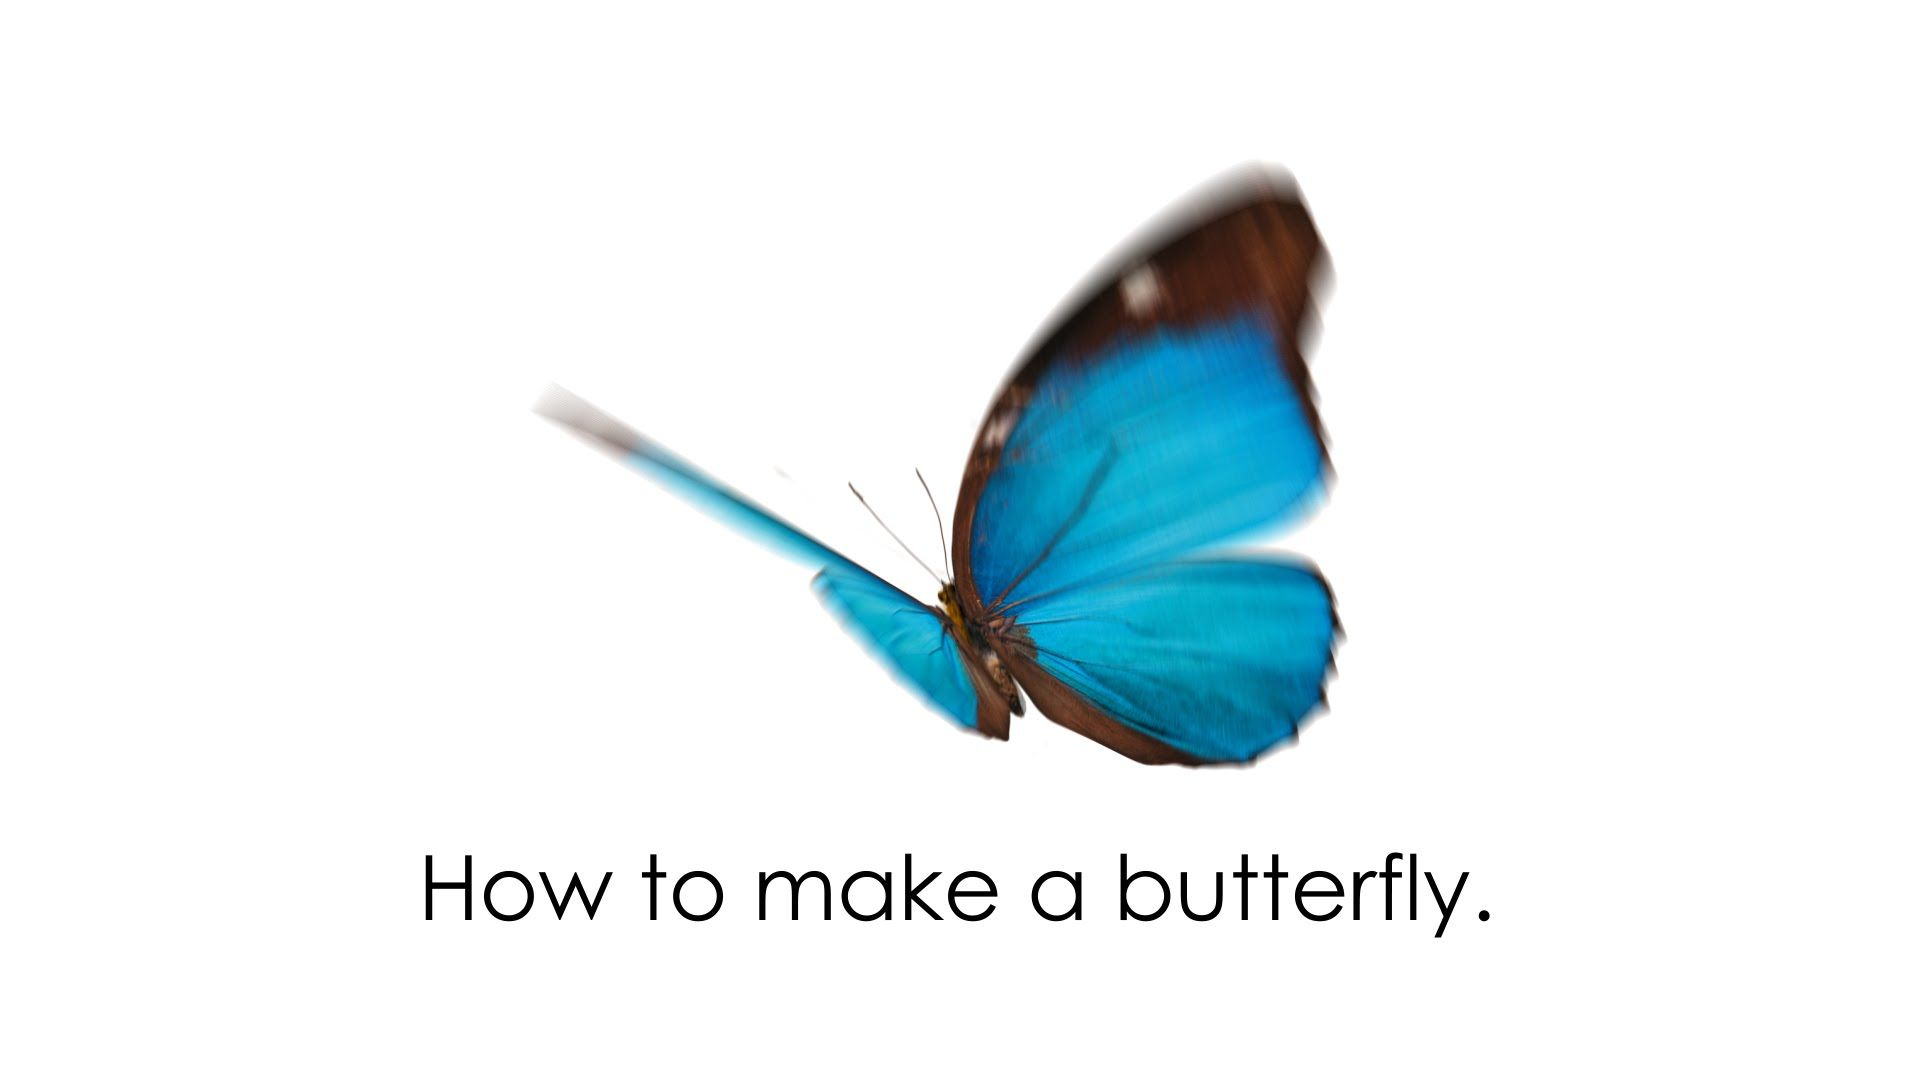 AfterEffectsで作る蝶 how to make an animate butterfly by